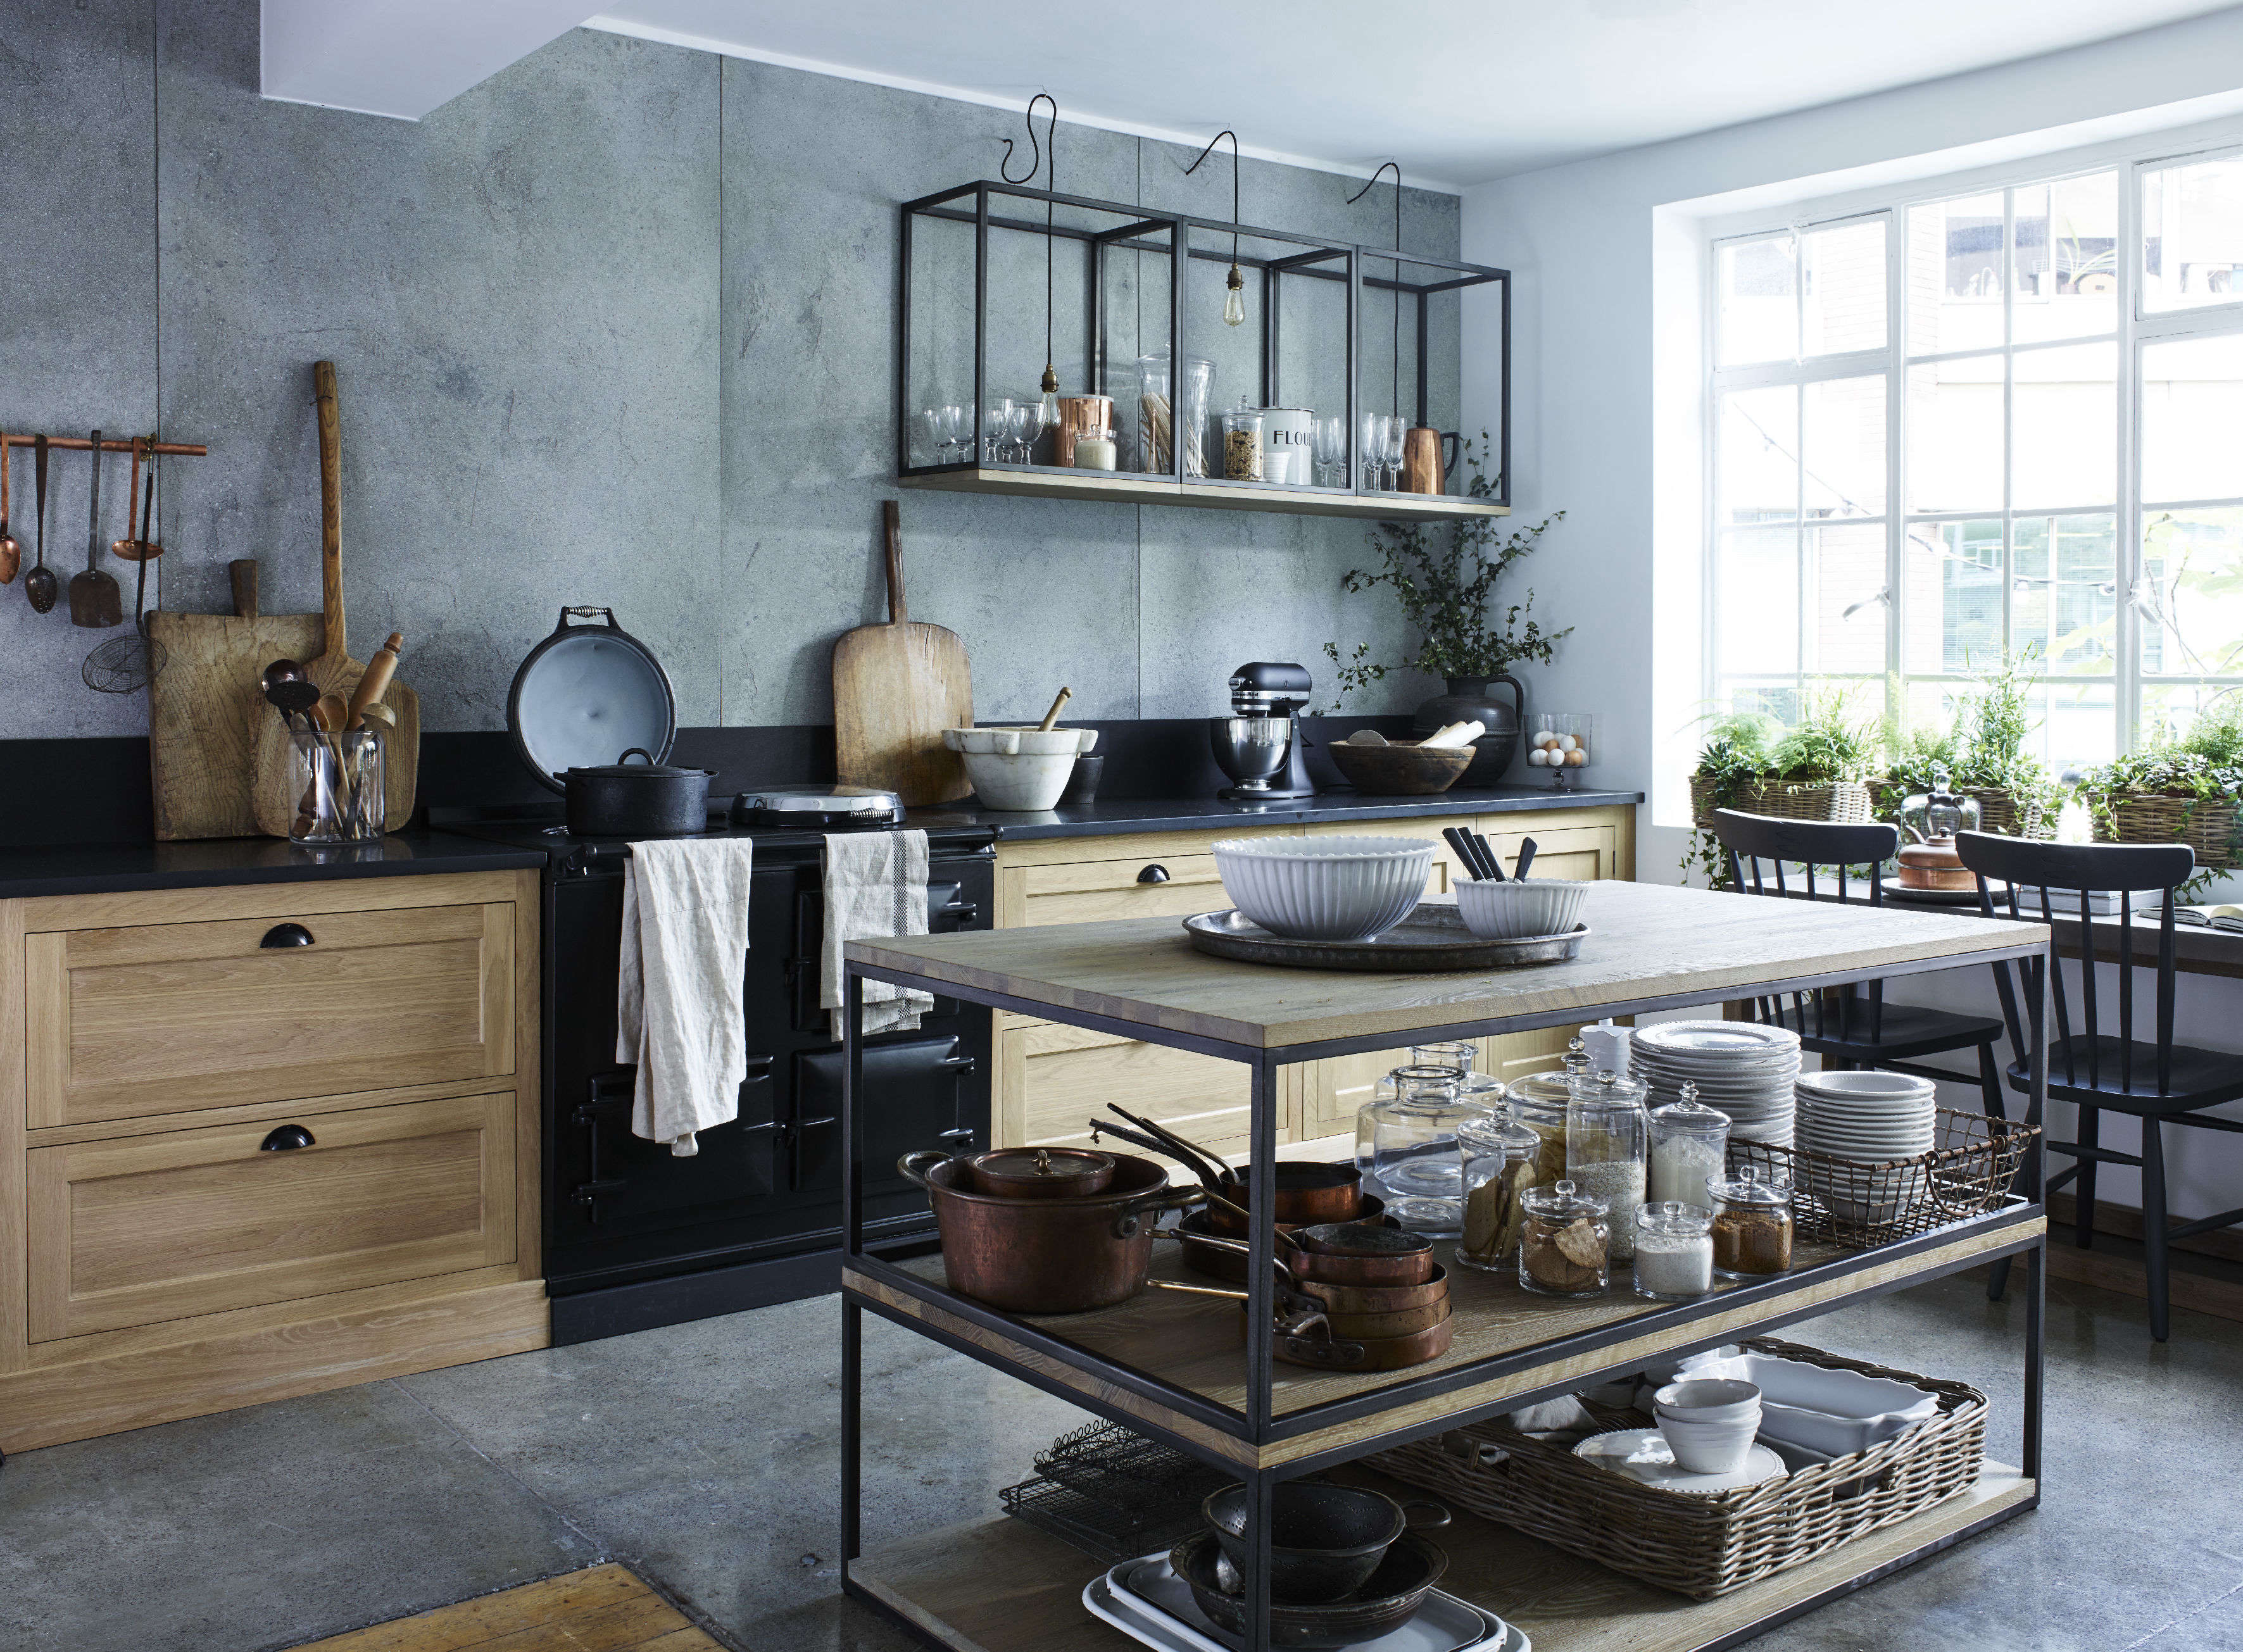 Design Sleuth: Stacked and Wall-Mounted Tables as Kitchen Storage ...